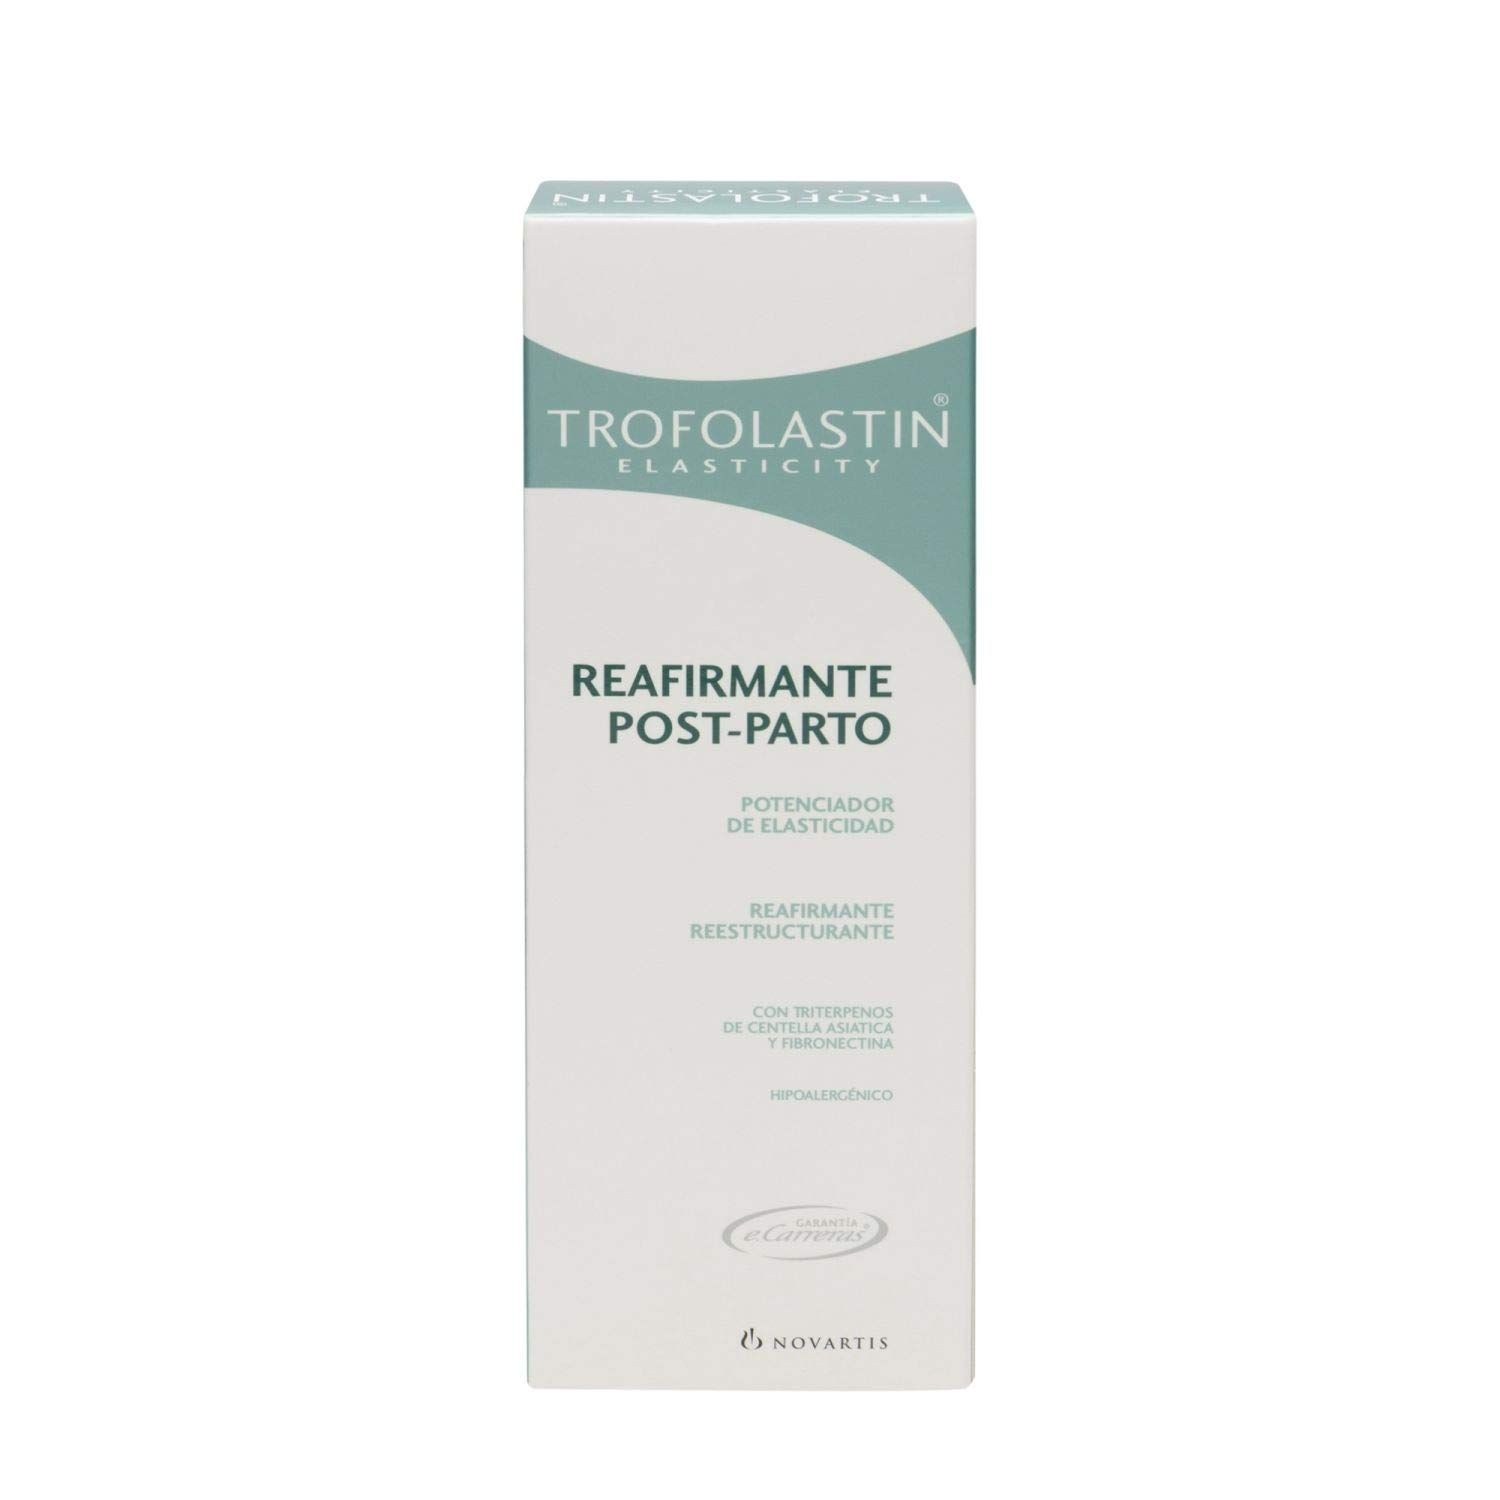 Amazon.com : Trofolastin Post Partum Firming Cream 200ml - Anti Stretch Marks Cream - Post Partum Moisturizer : Beauty